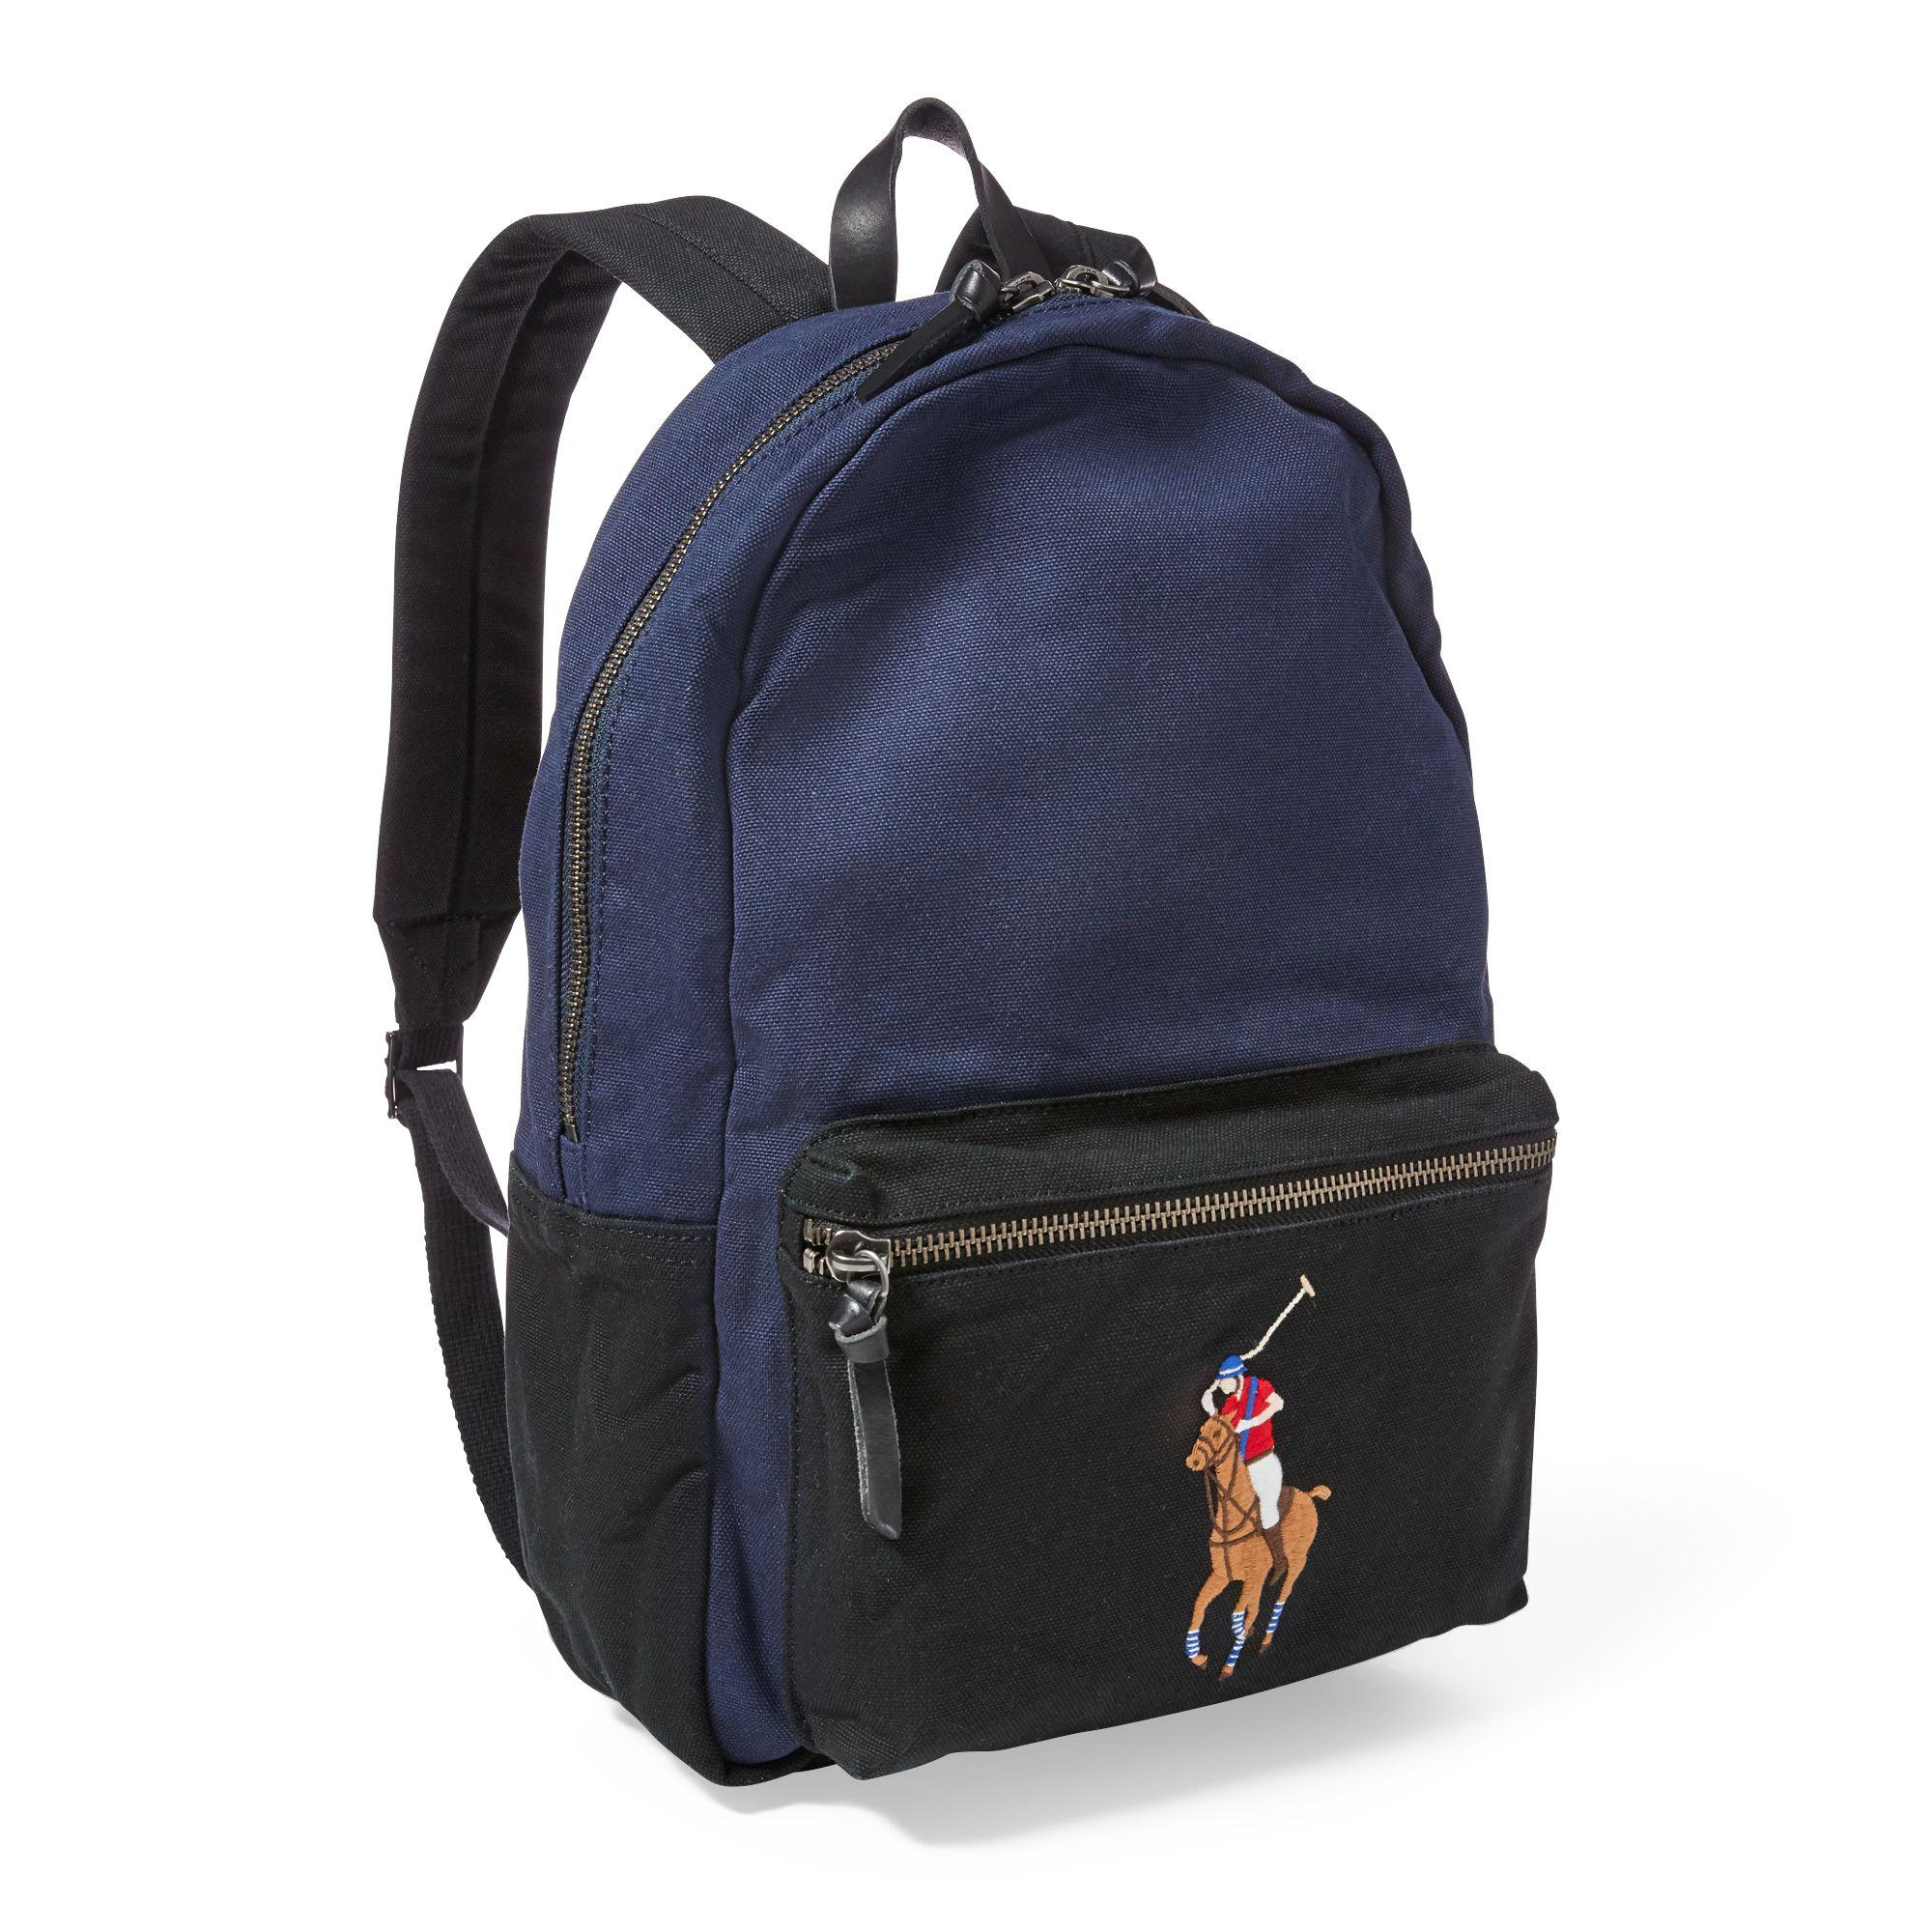 Lyst - Polo Ralph Lauren Canvas Big Pony Backpack in Black for Men 668775d70a35b